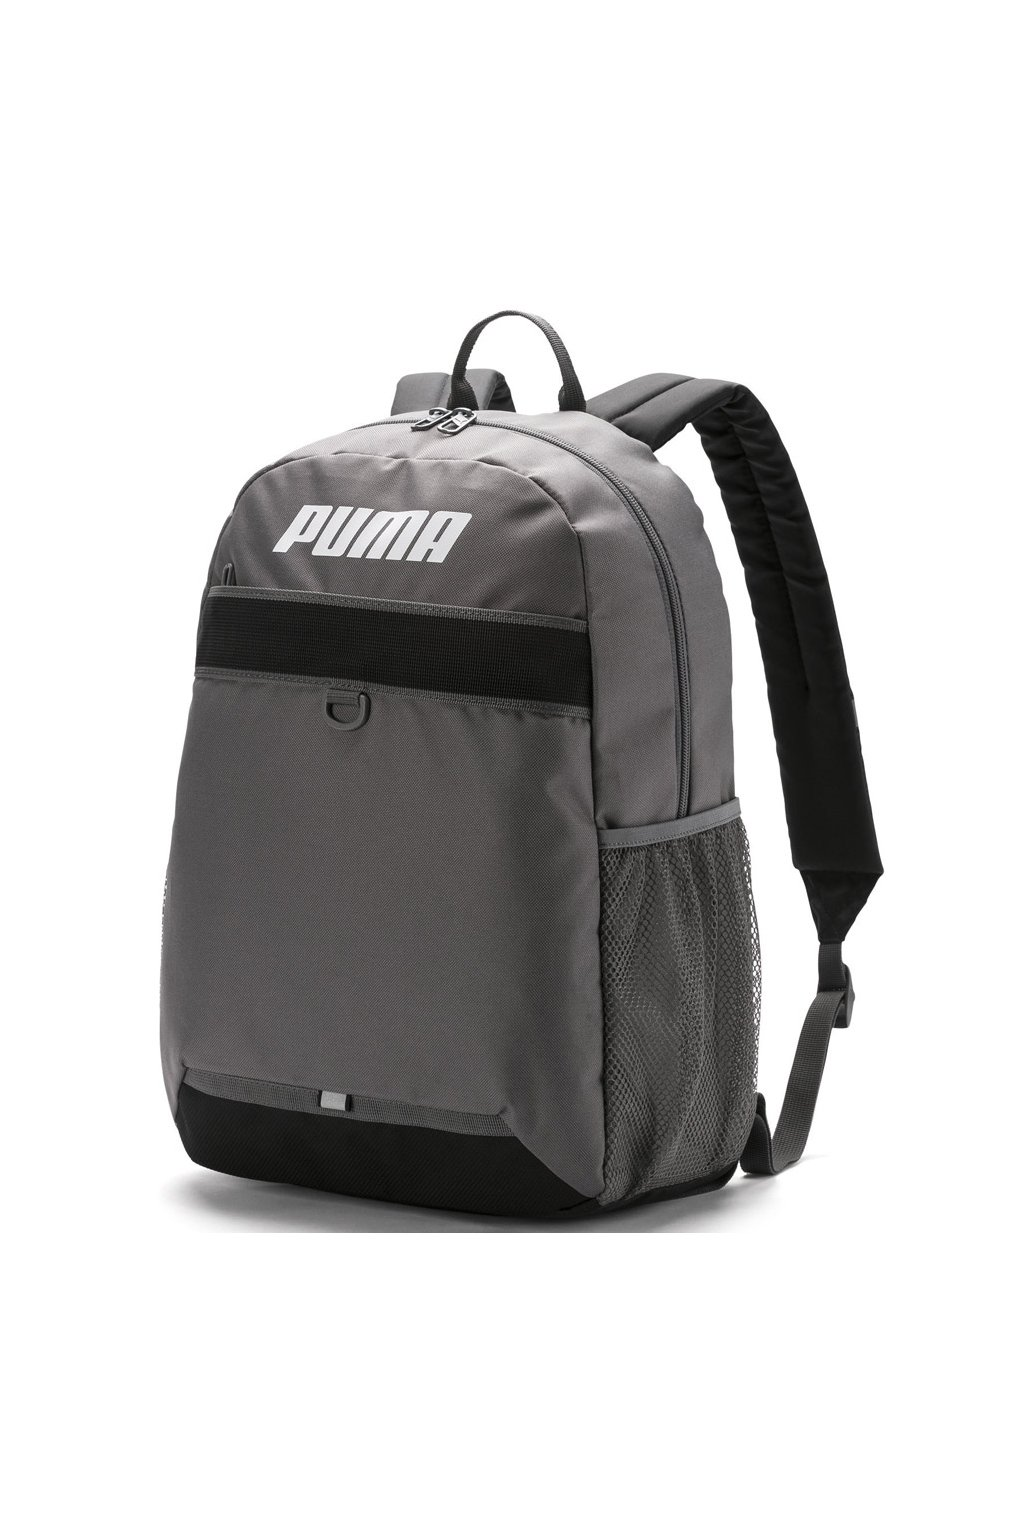 Batoh Puma Plus Backpack 076724 02 šedý 23L